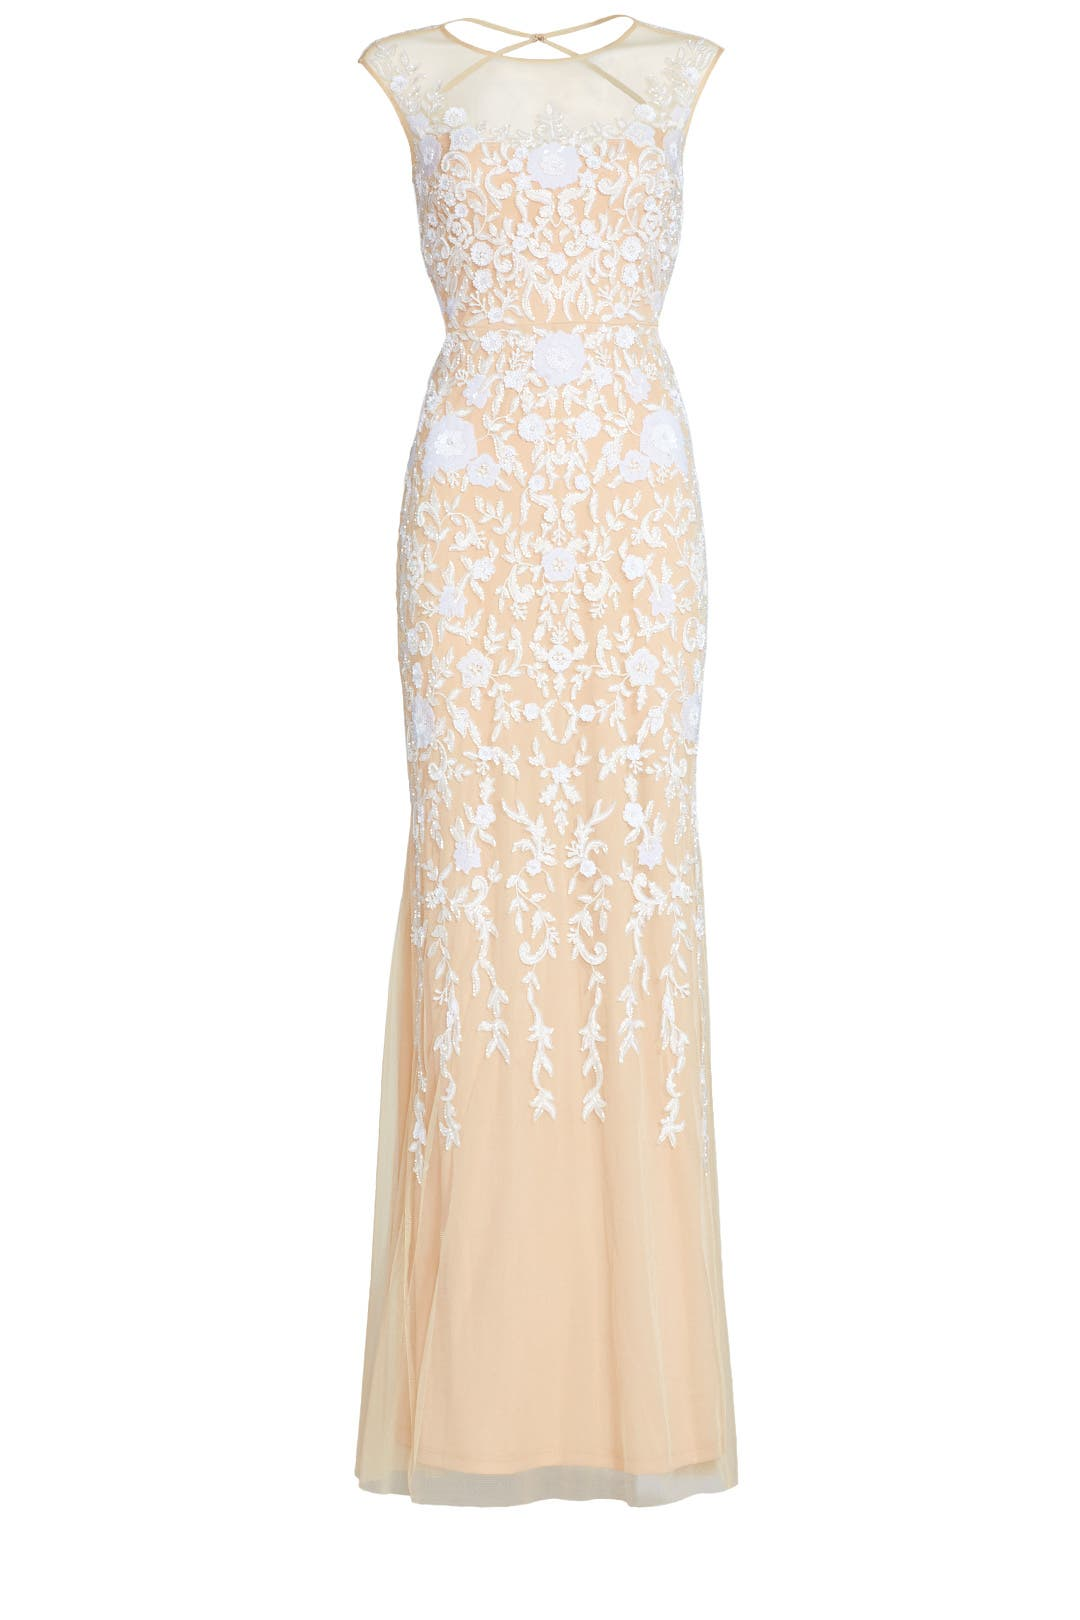 Champagne Gown by Badgley Mischka for $129 | Rent the Runway